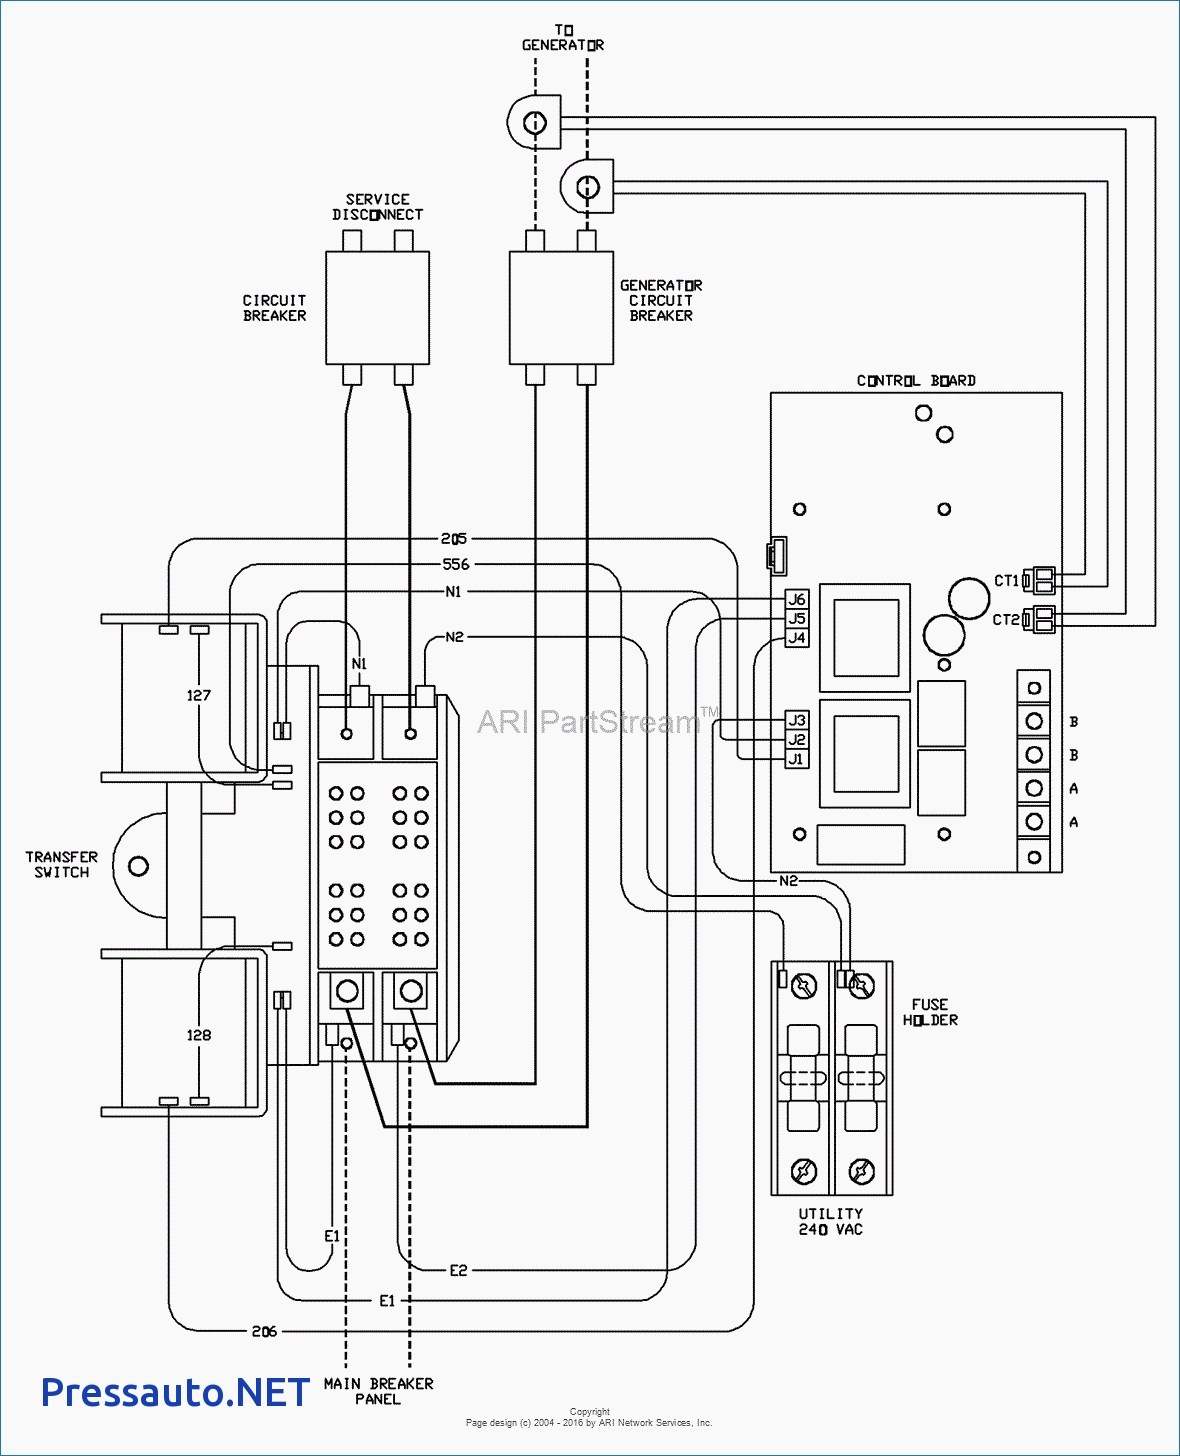 hight resolution of generator transfer switch wiring diagram collection portable generator wiring diagram whole house transfer switch diagram